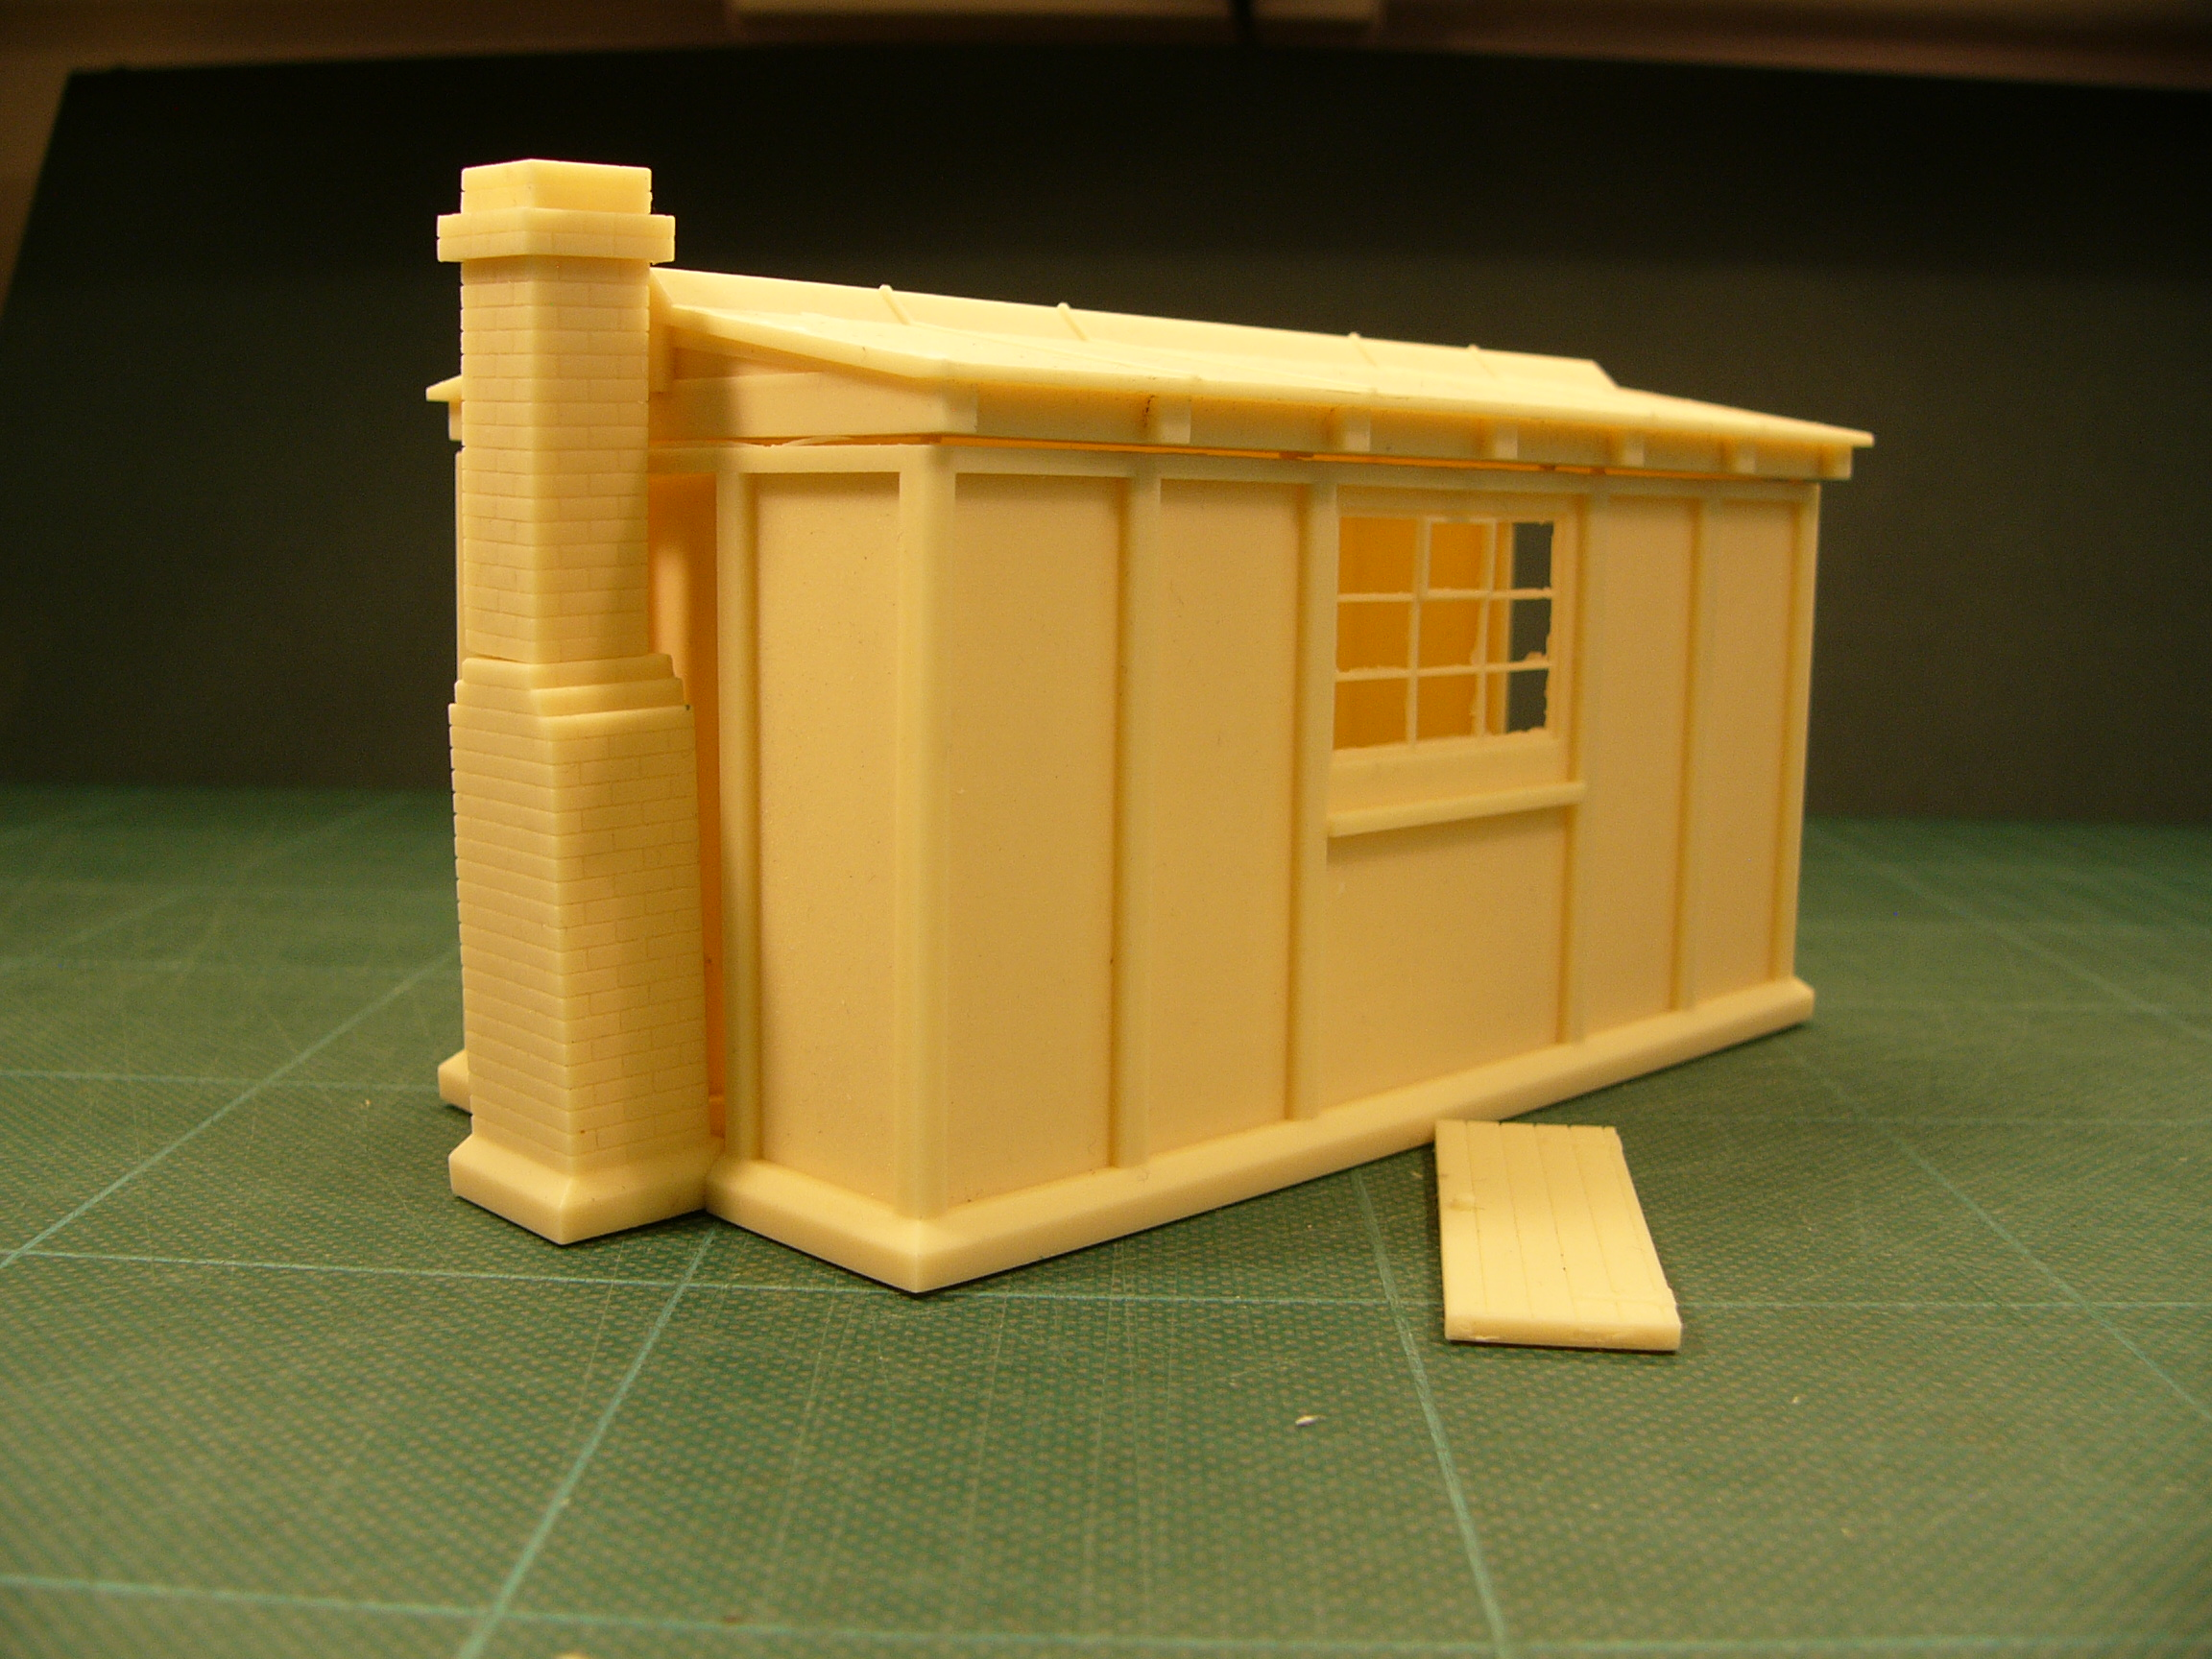 7B028 GWR Concrete Lineside Hut Kit